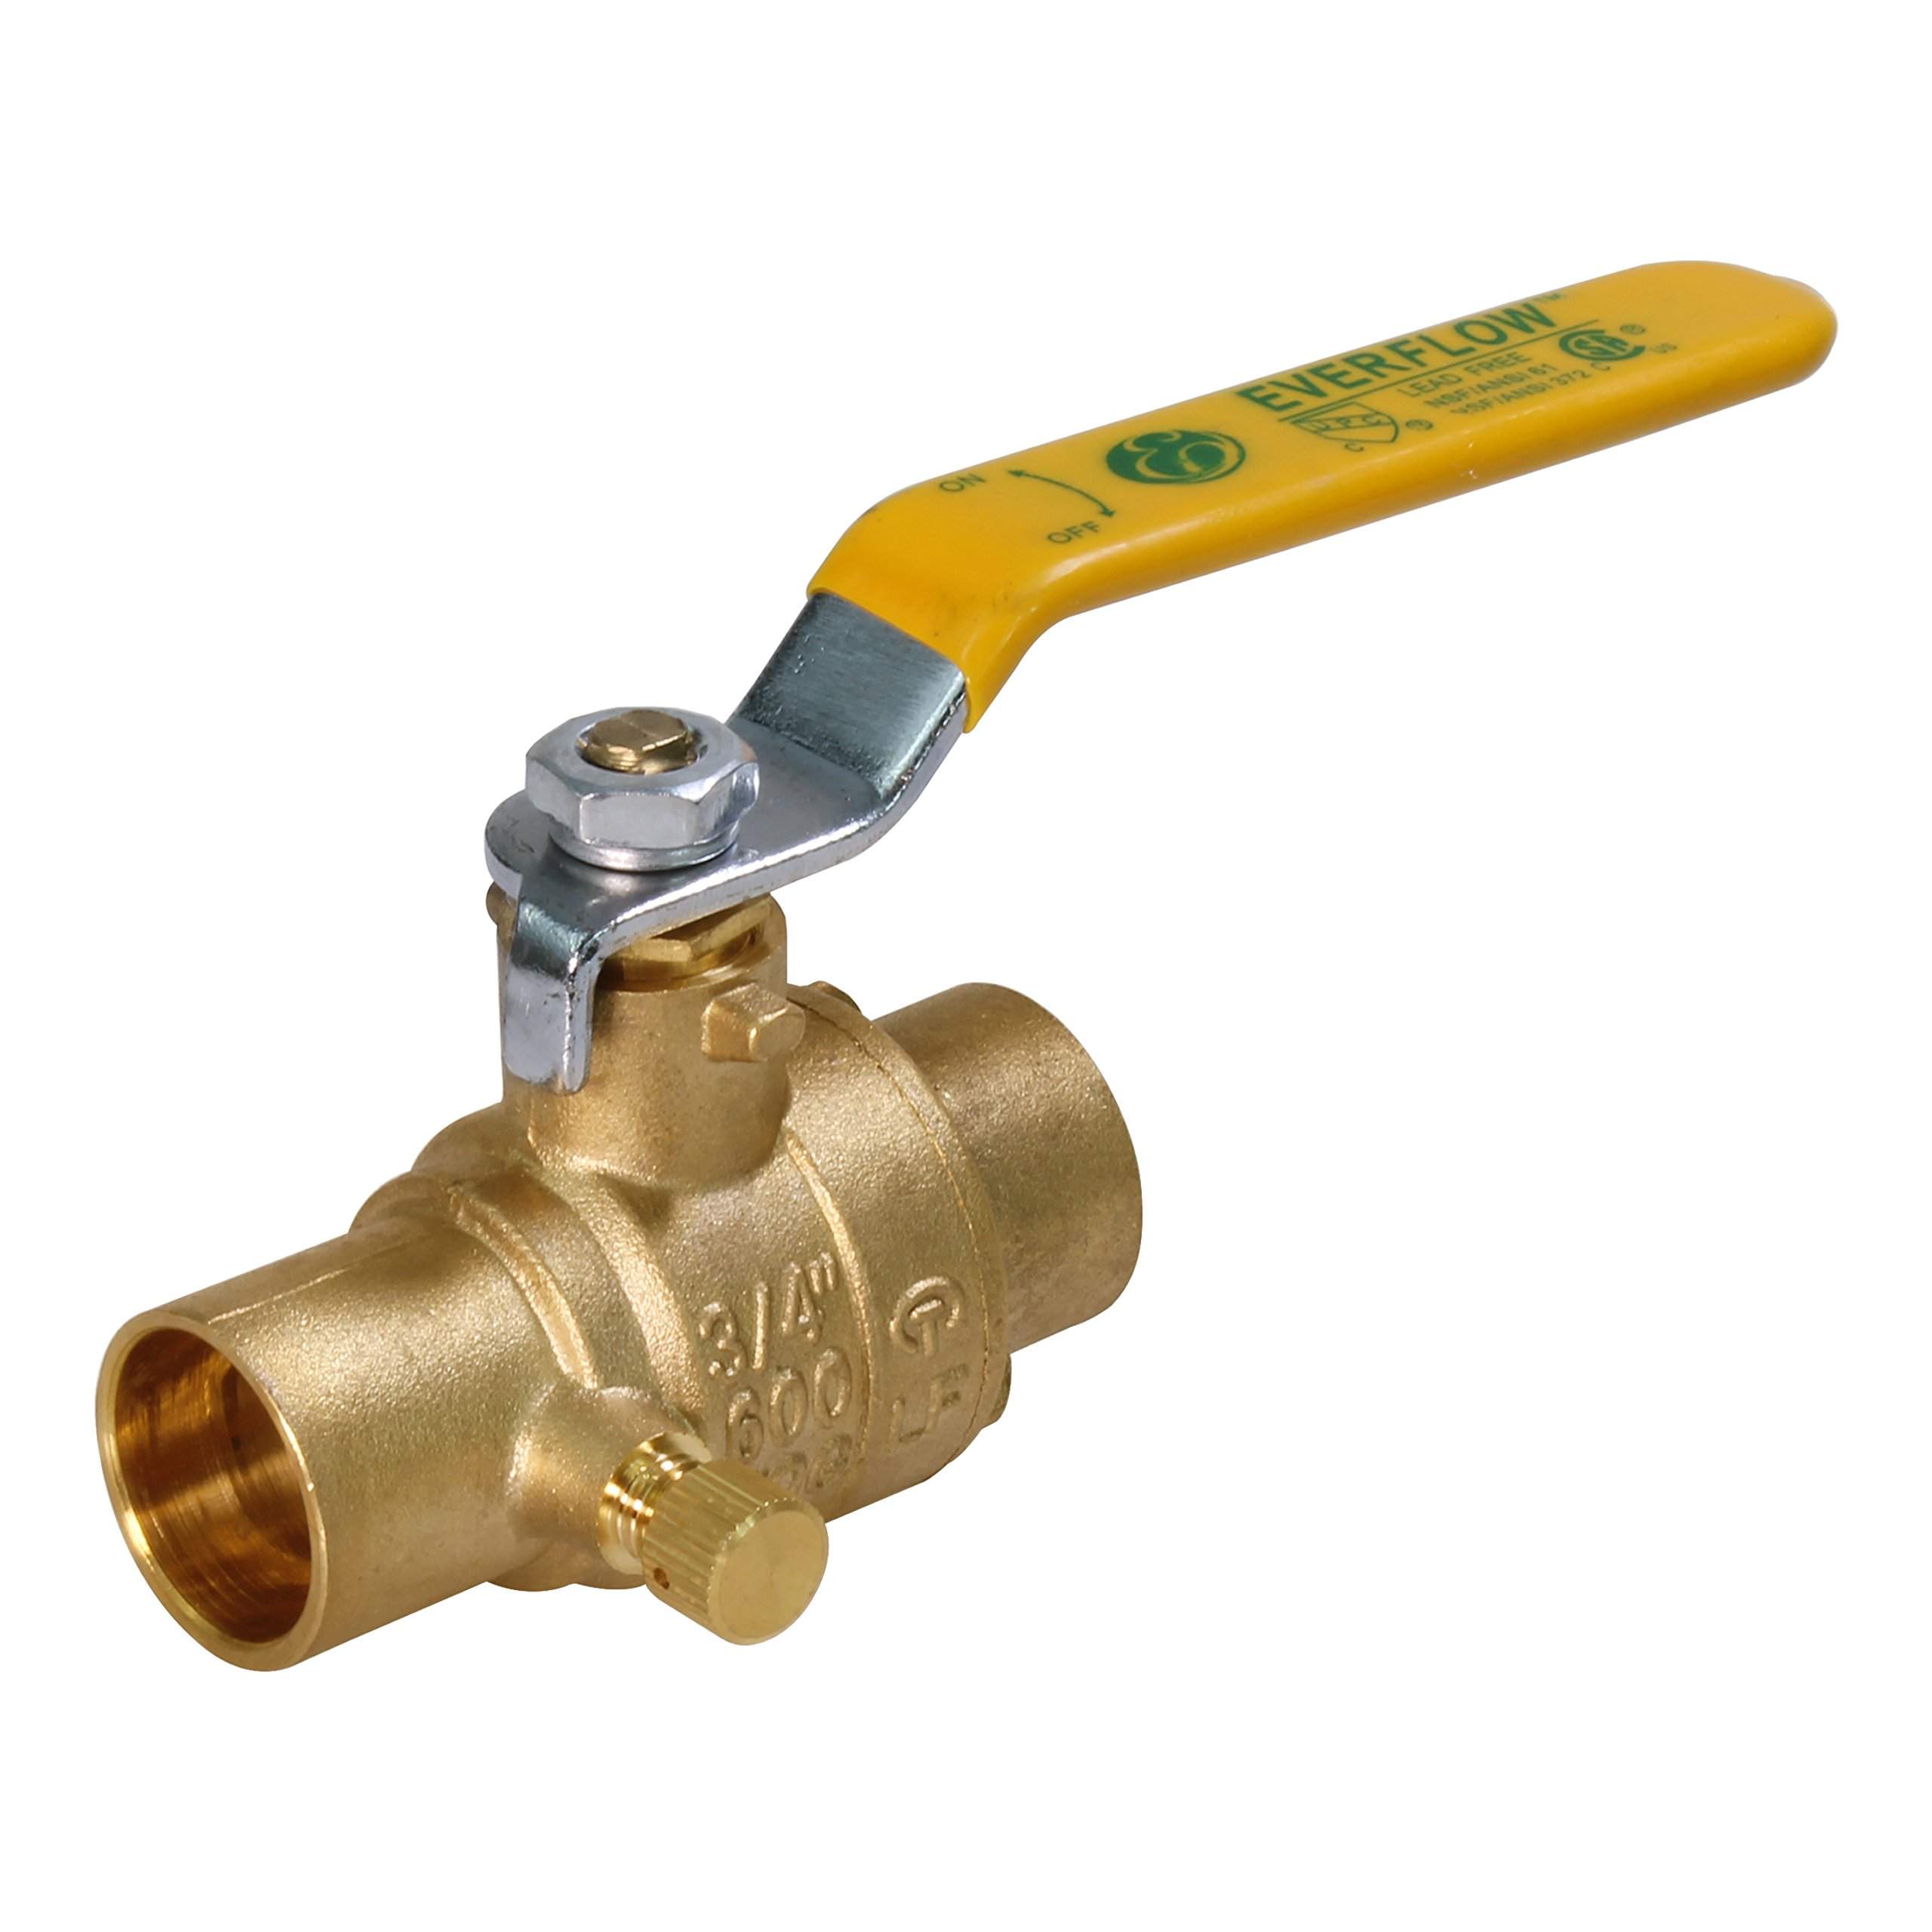 Everflow 405C034-NL Full Port Ball Valve with Drain, Forged Brass Construction w/Chrome Plated Brass Body with 3/4 Inch SWT, Blow Out Proof Stem Design, Stainless Steel Ball Handle with Vinyl Grip